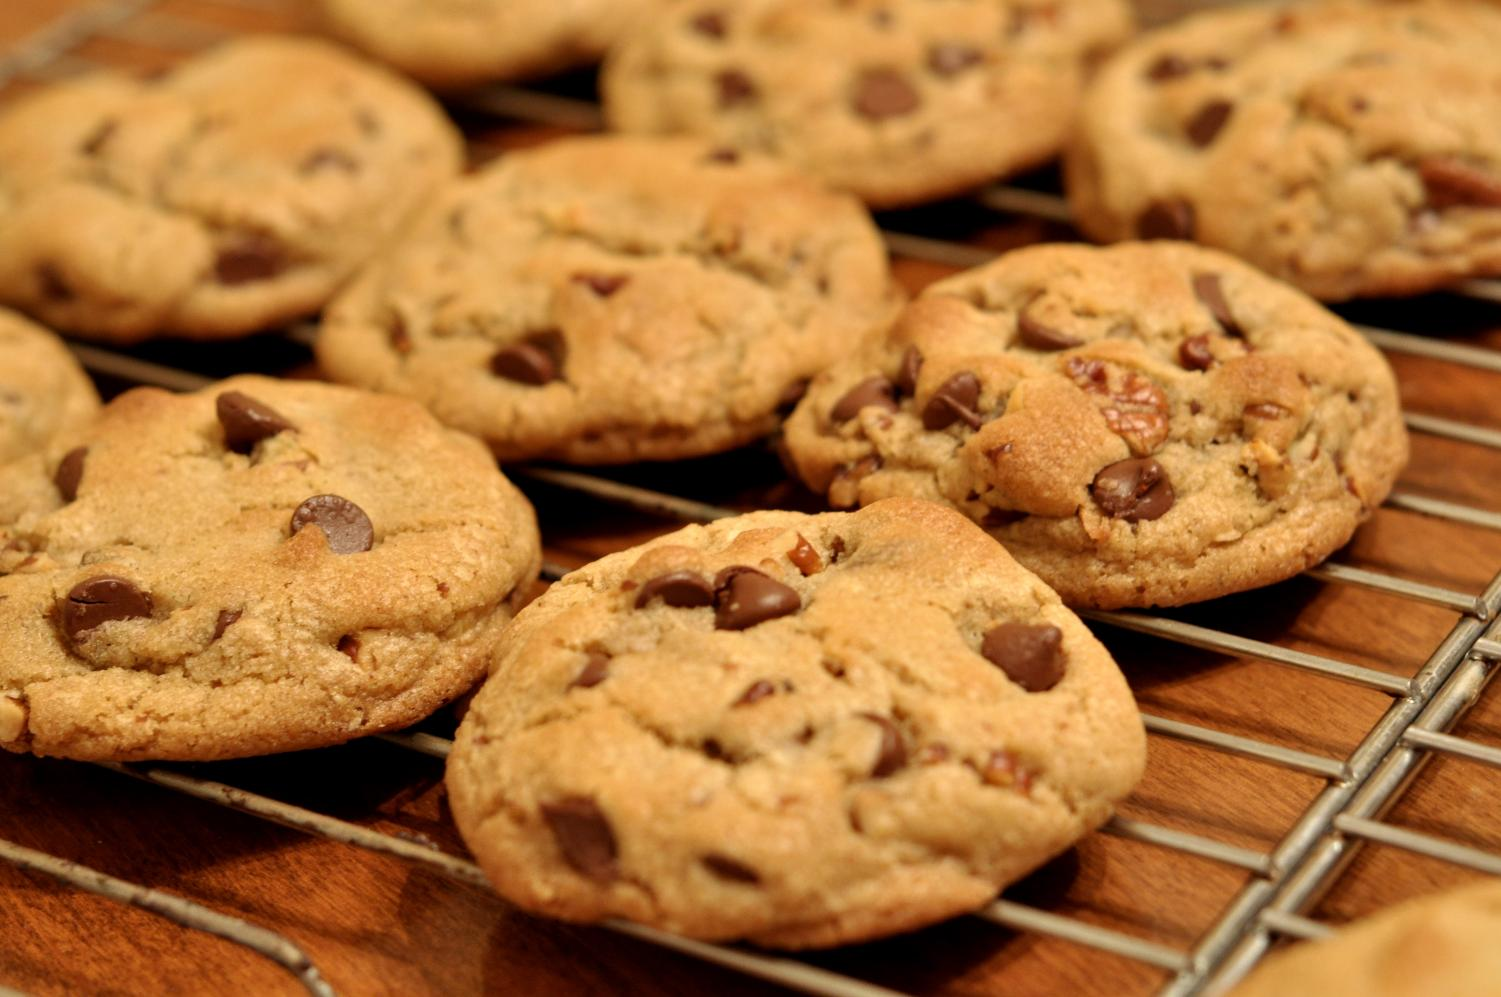 Photo labeled for non-commercial reuse via https://commons.wikimedia.org/wiki/File:Chocolate_Chip_Cookies_-_kimberlykv.jpgpicture Under the Creative Commons Licence